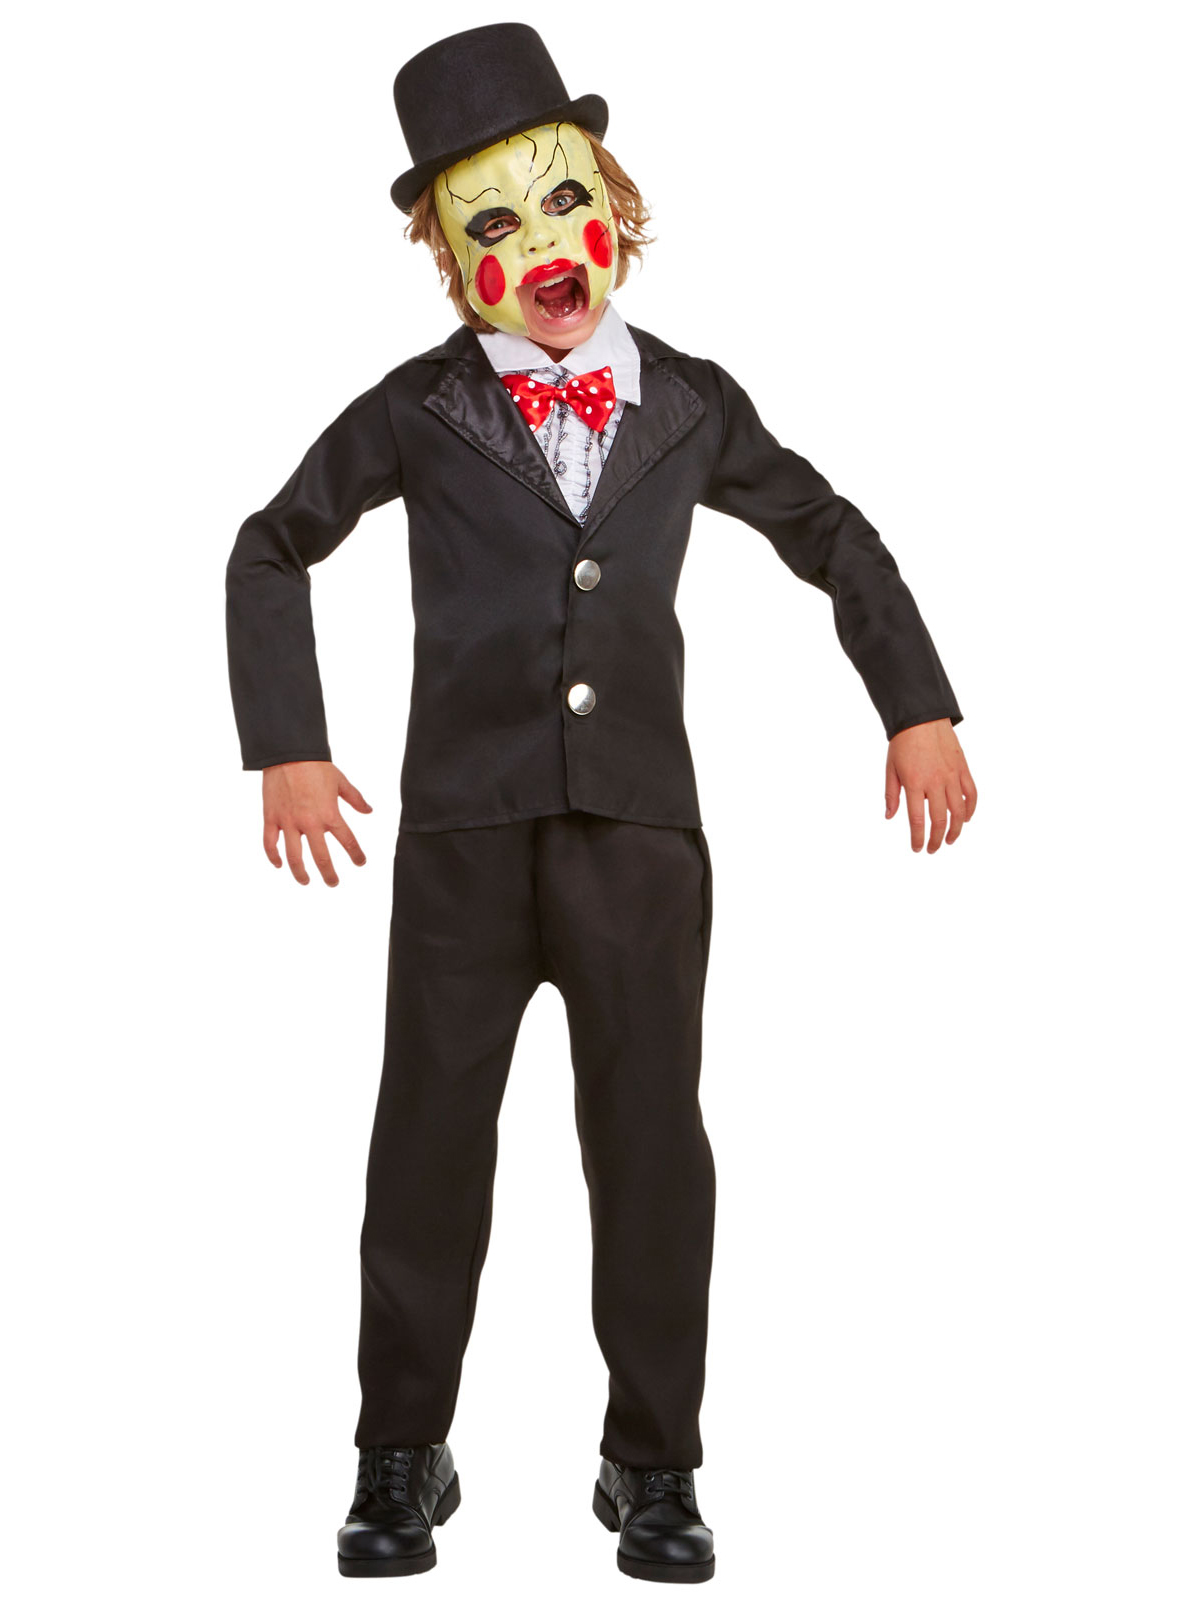 Villainous Ventriloquist Child Costume 248599